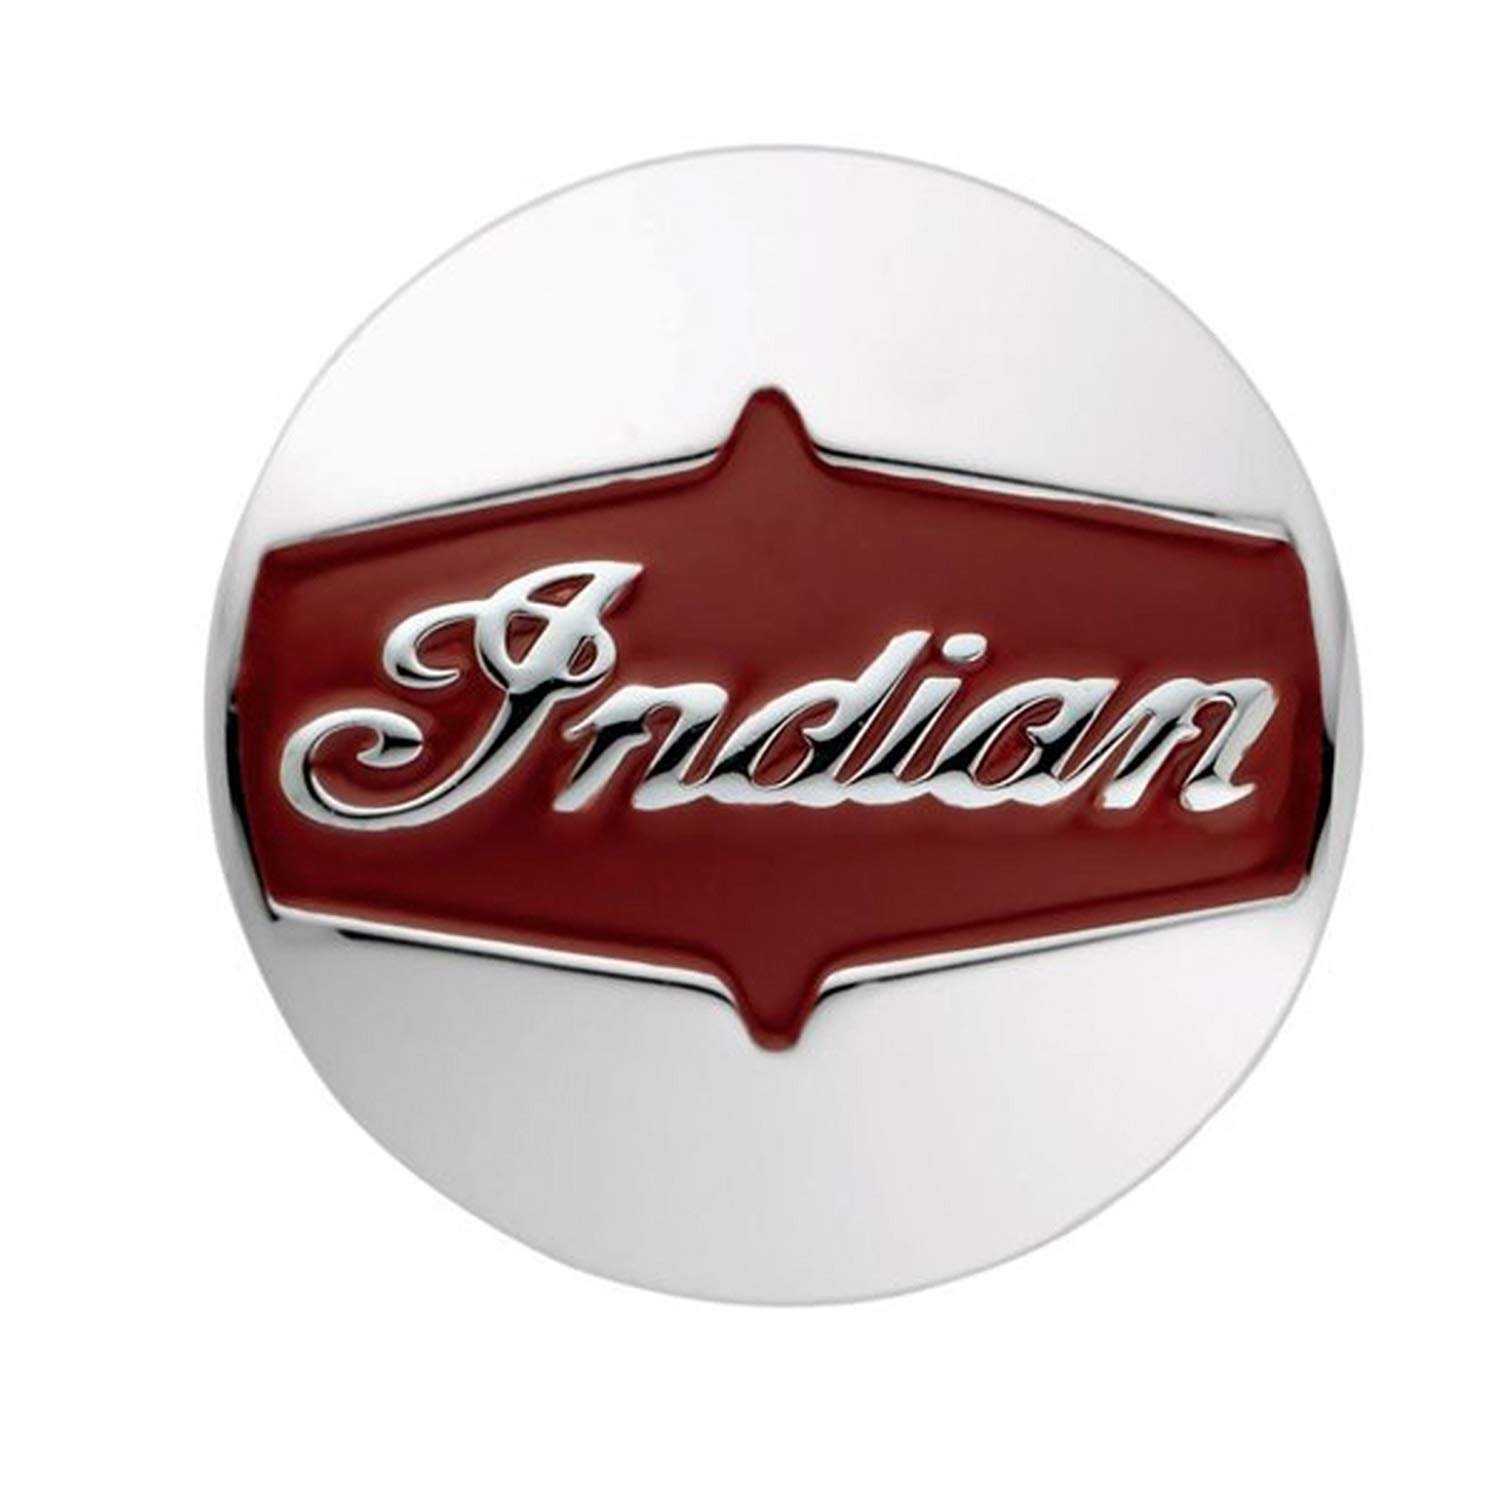 4 Indian Motorcycle Concho Vintage Chief Badge Classic Factory Bag Vest Jacket